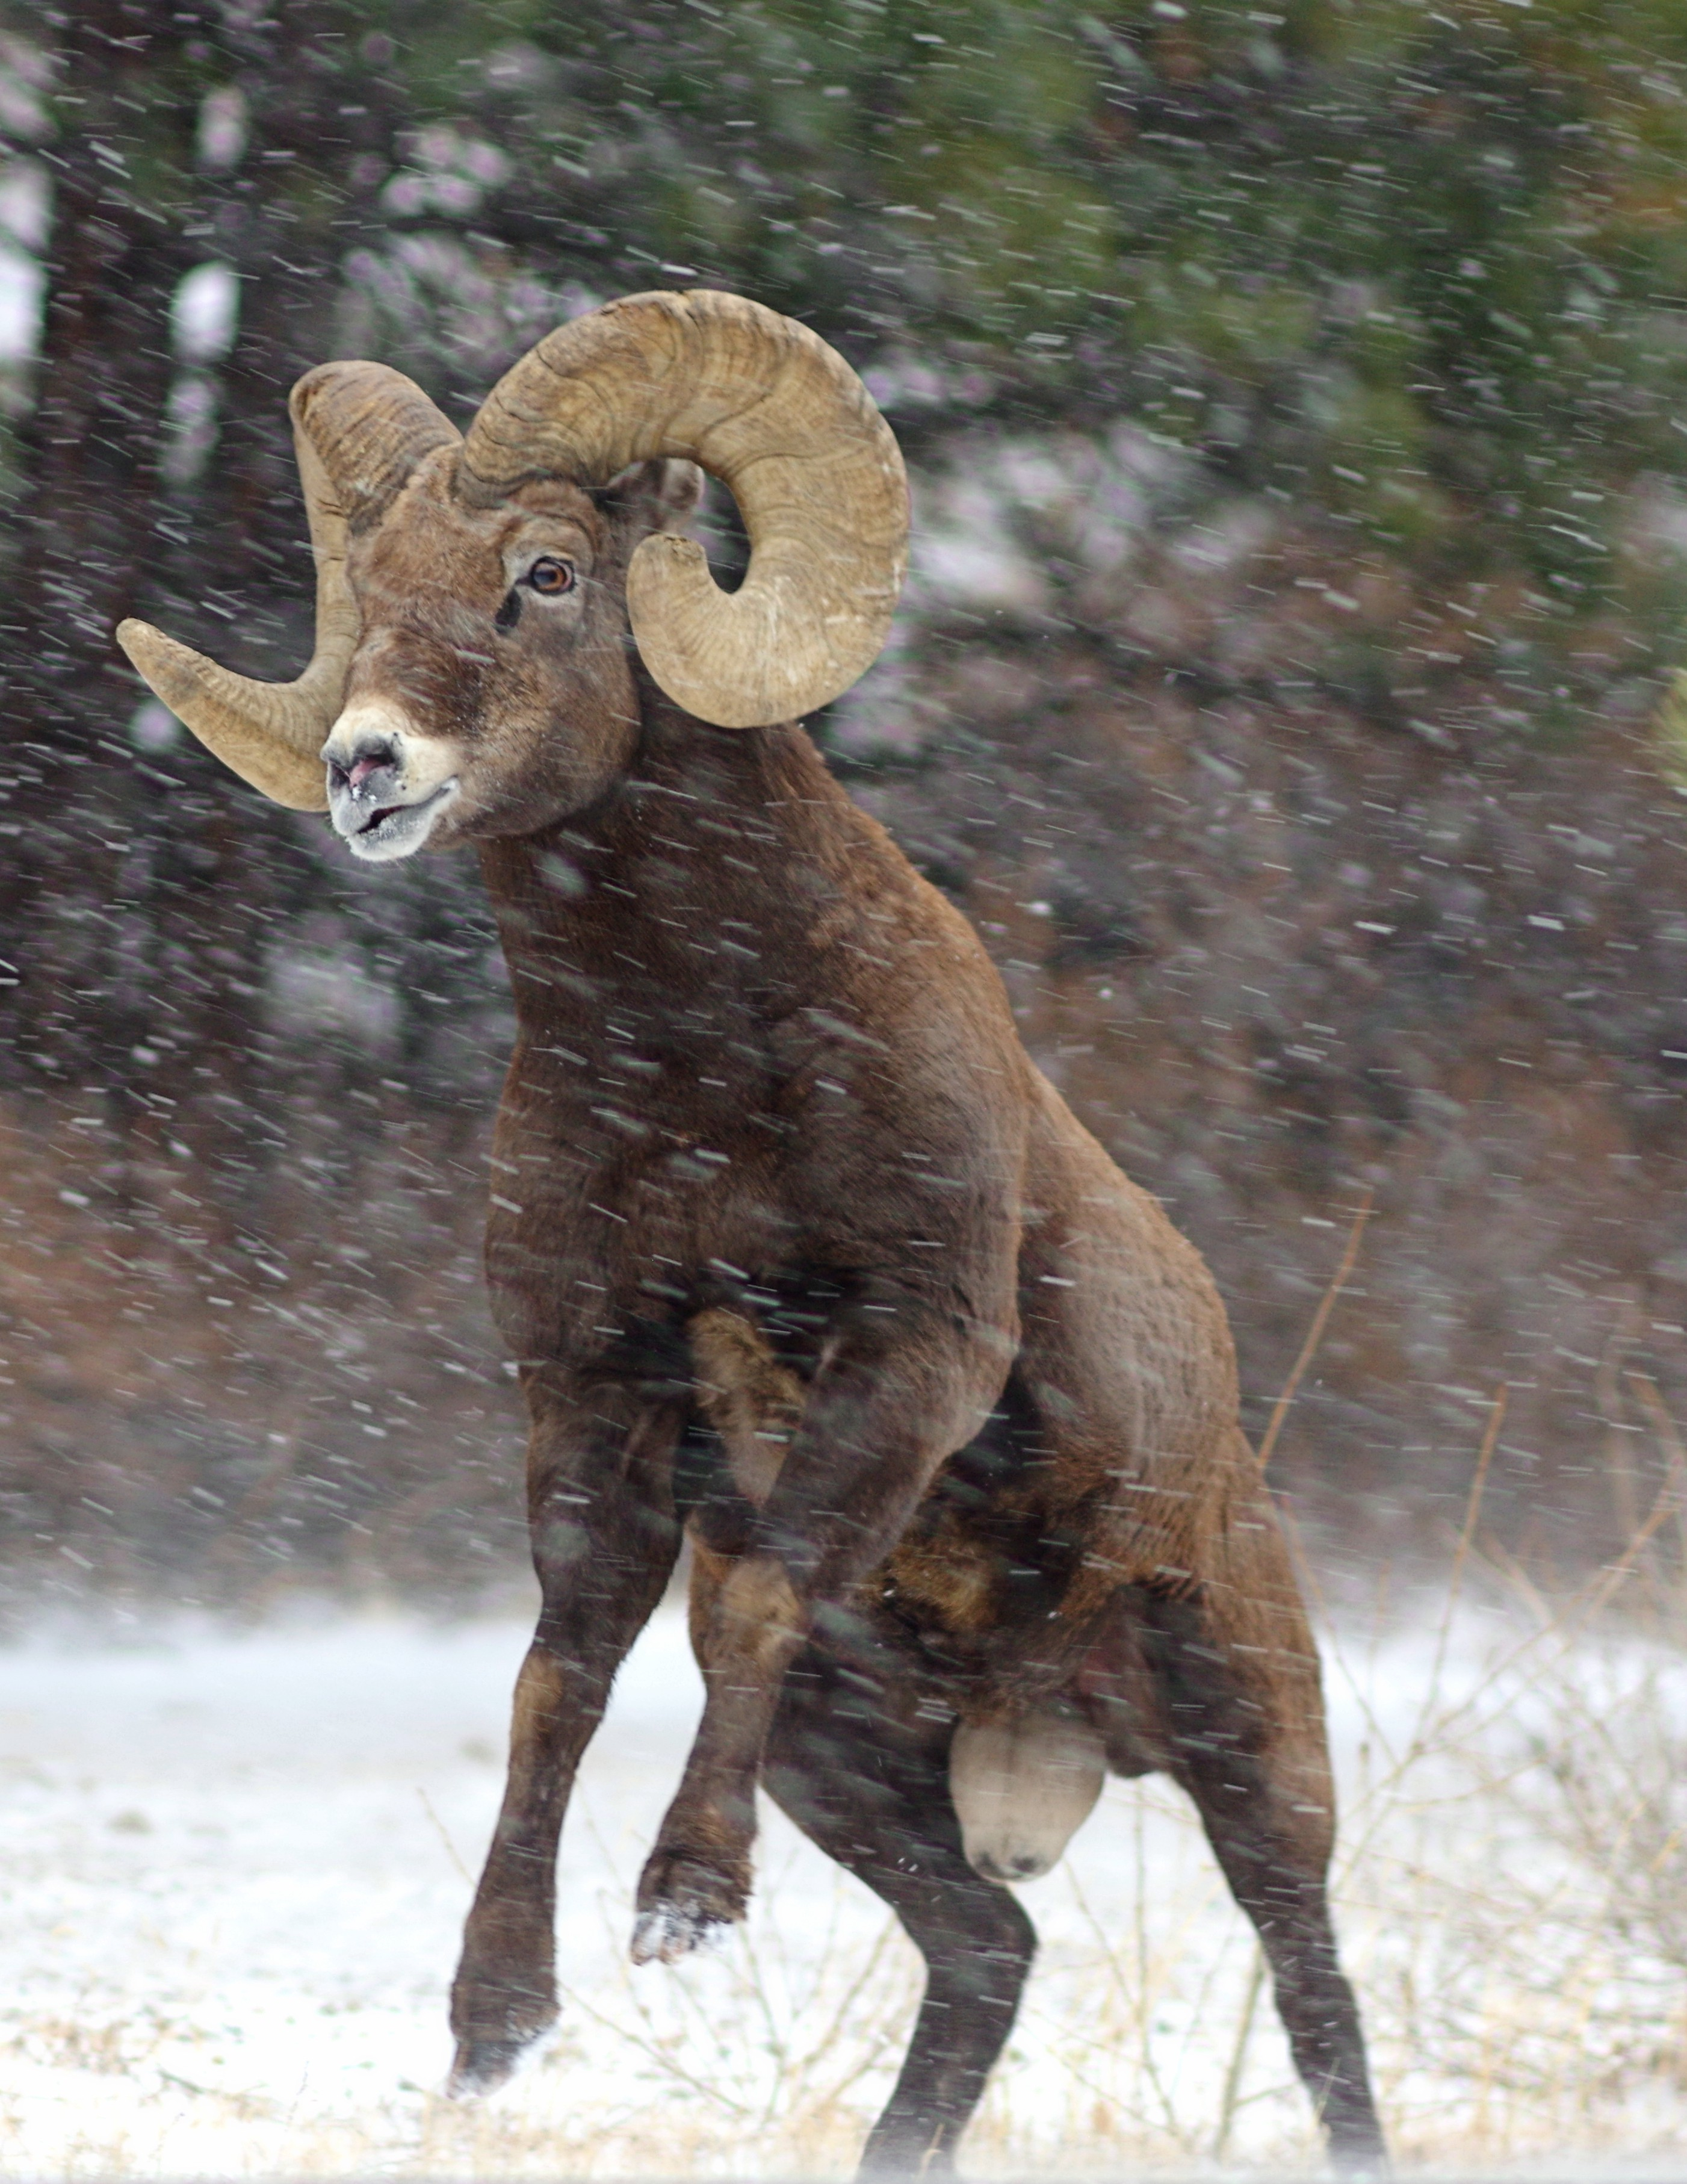 Big Horn Sheep taken by Stephen C. Torbit